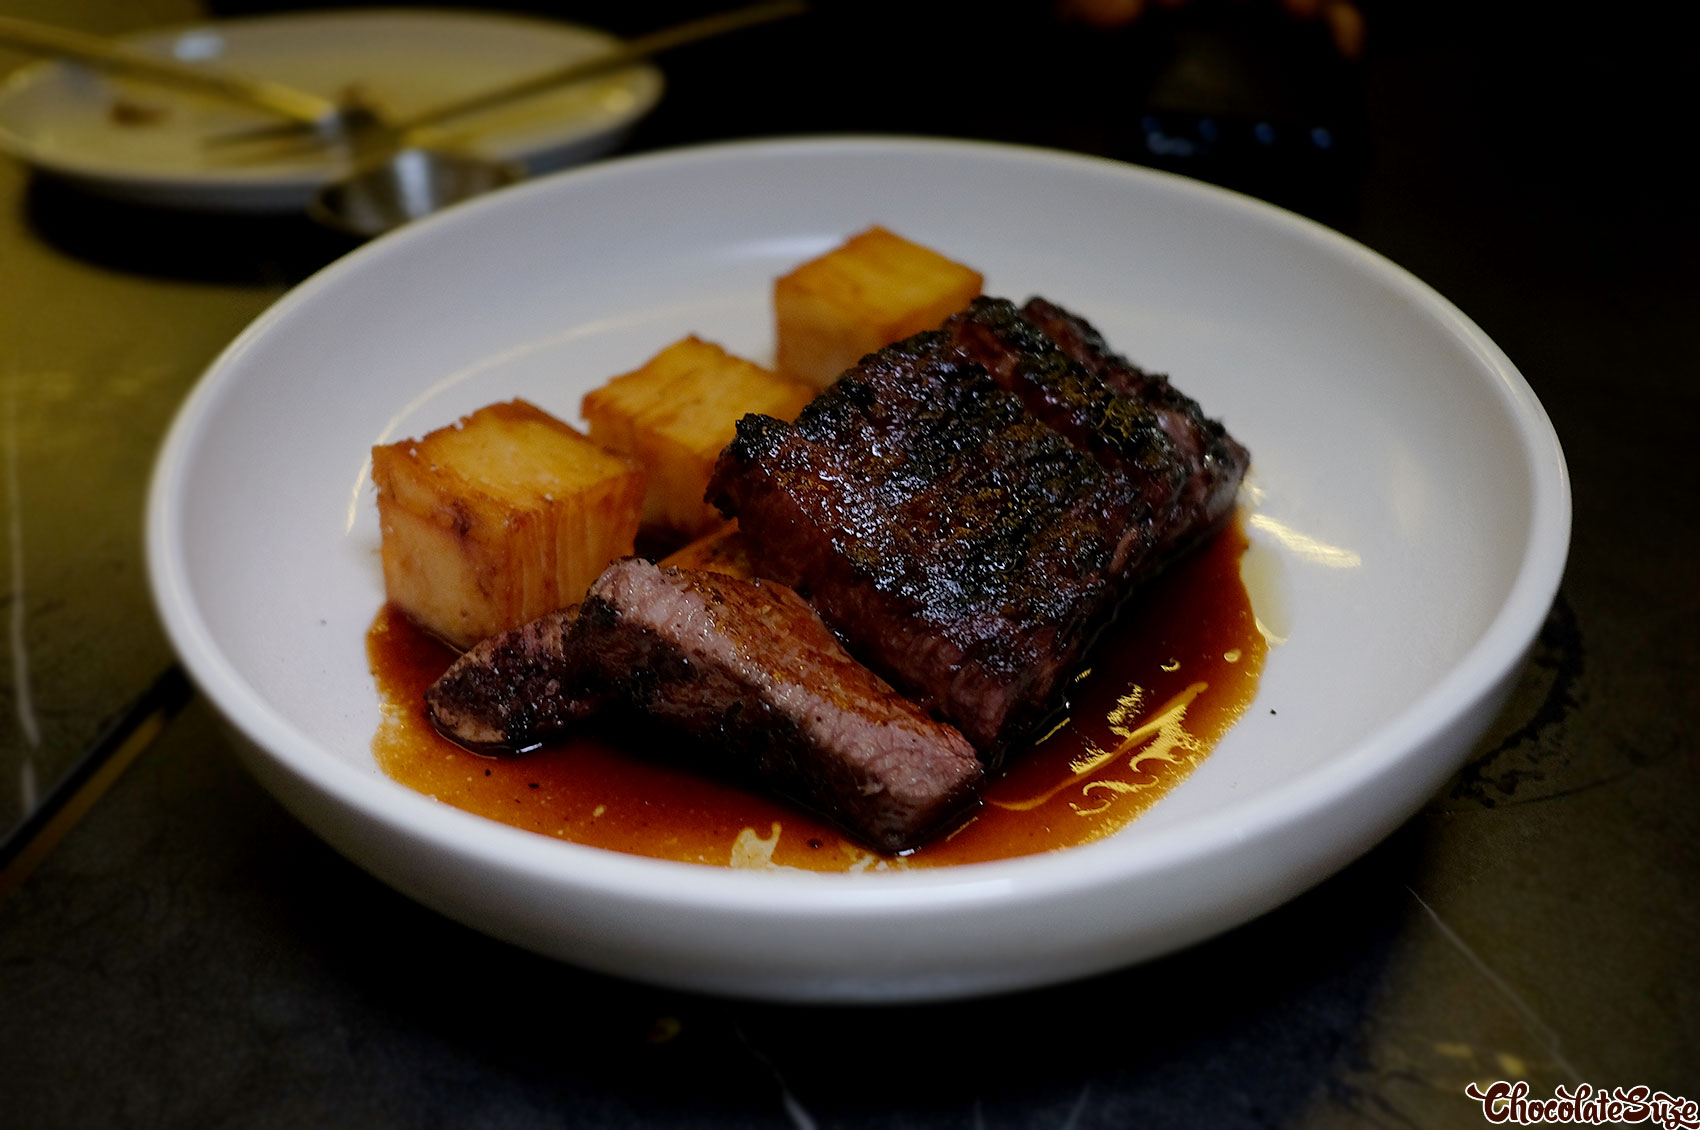 Barbecue beef short rib at Soul Dining, Surry Hills